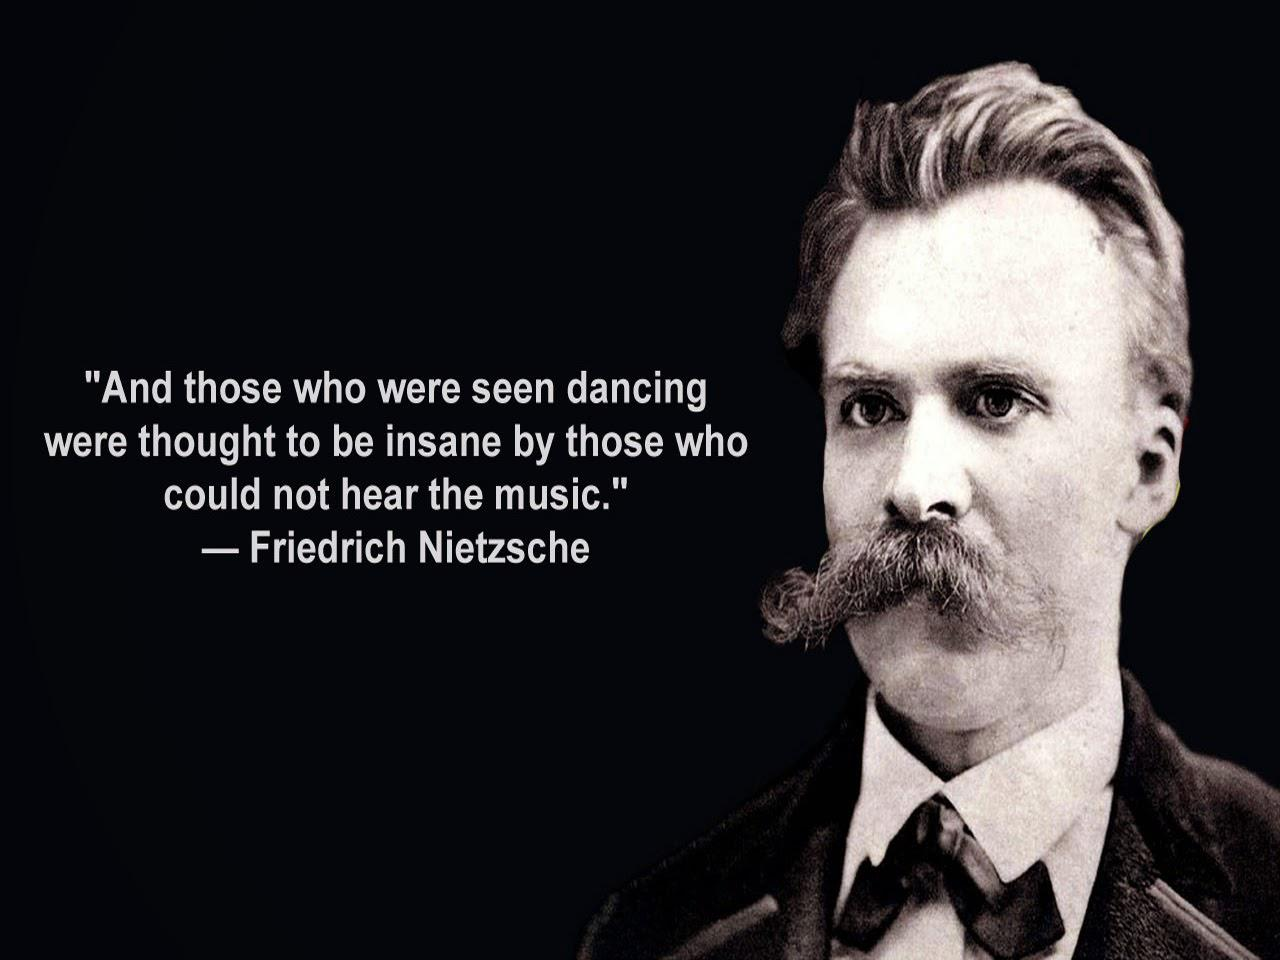 And those who were seen dancing were thought to be insane by those who could not hear the music. – Friedrich Nietzsche [1280X960]